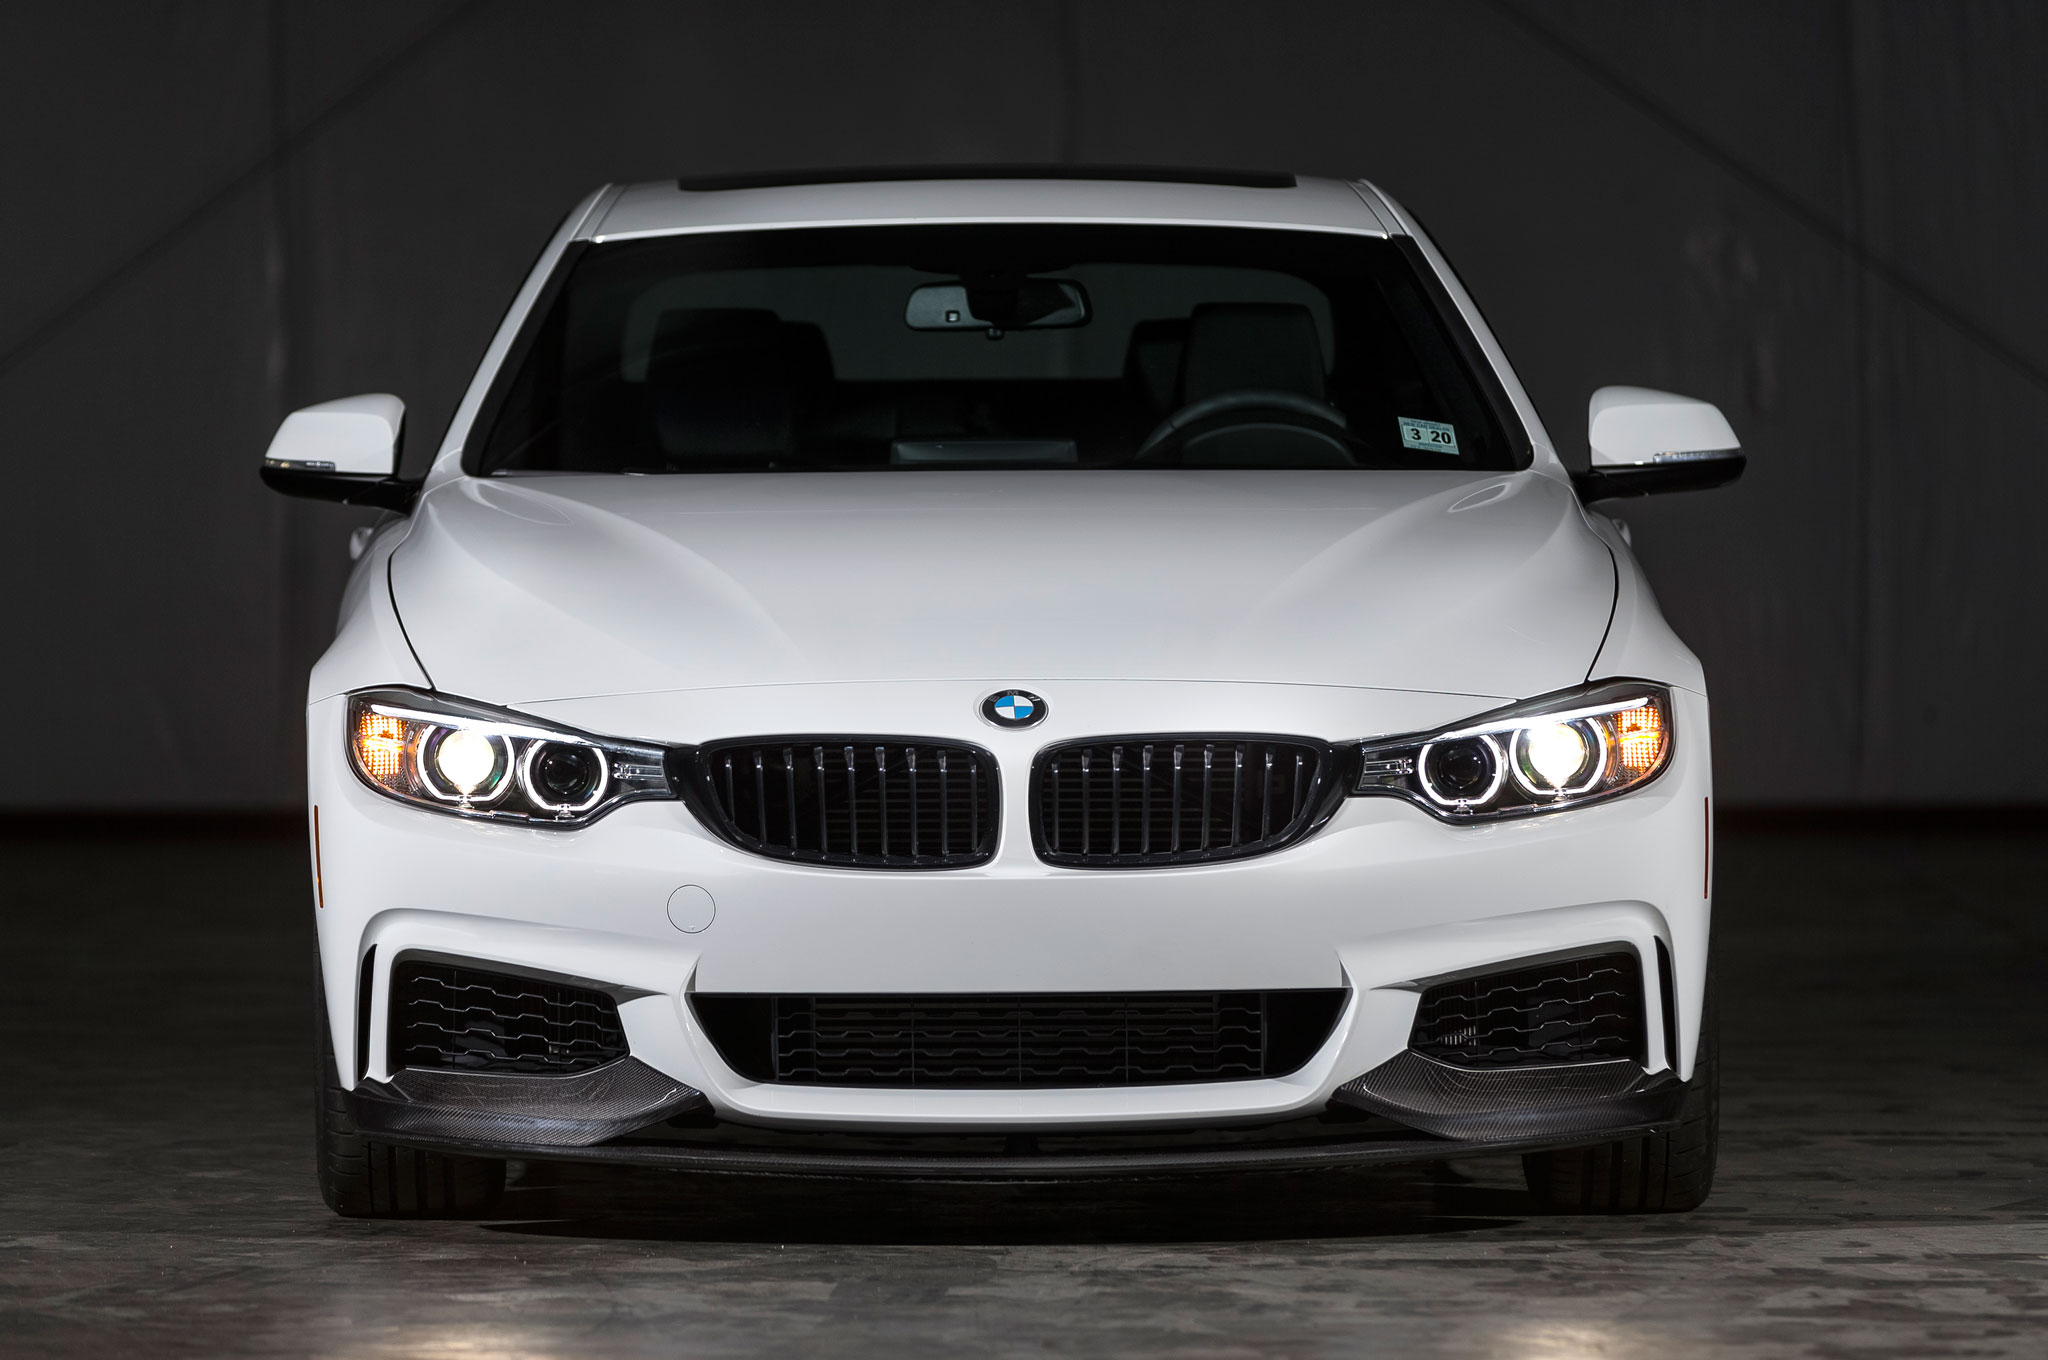 wallpaper have cool sale m hd bmw convertible gallery sport for i